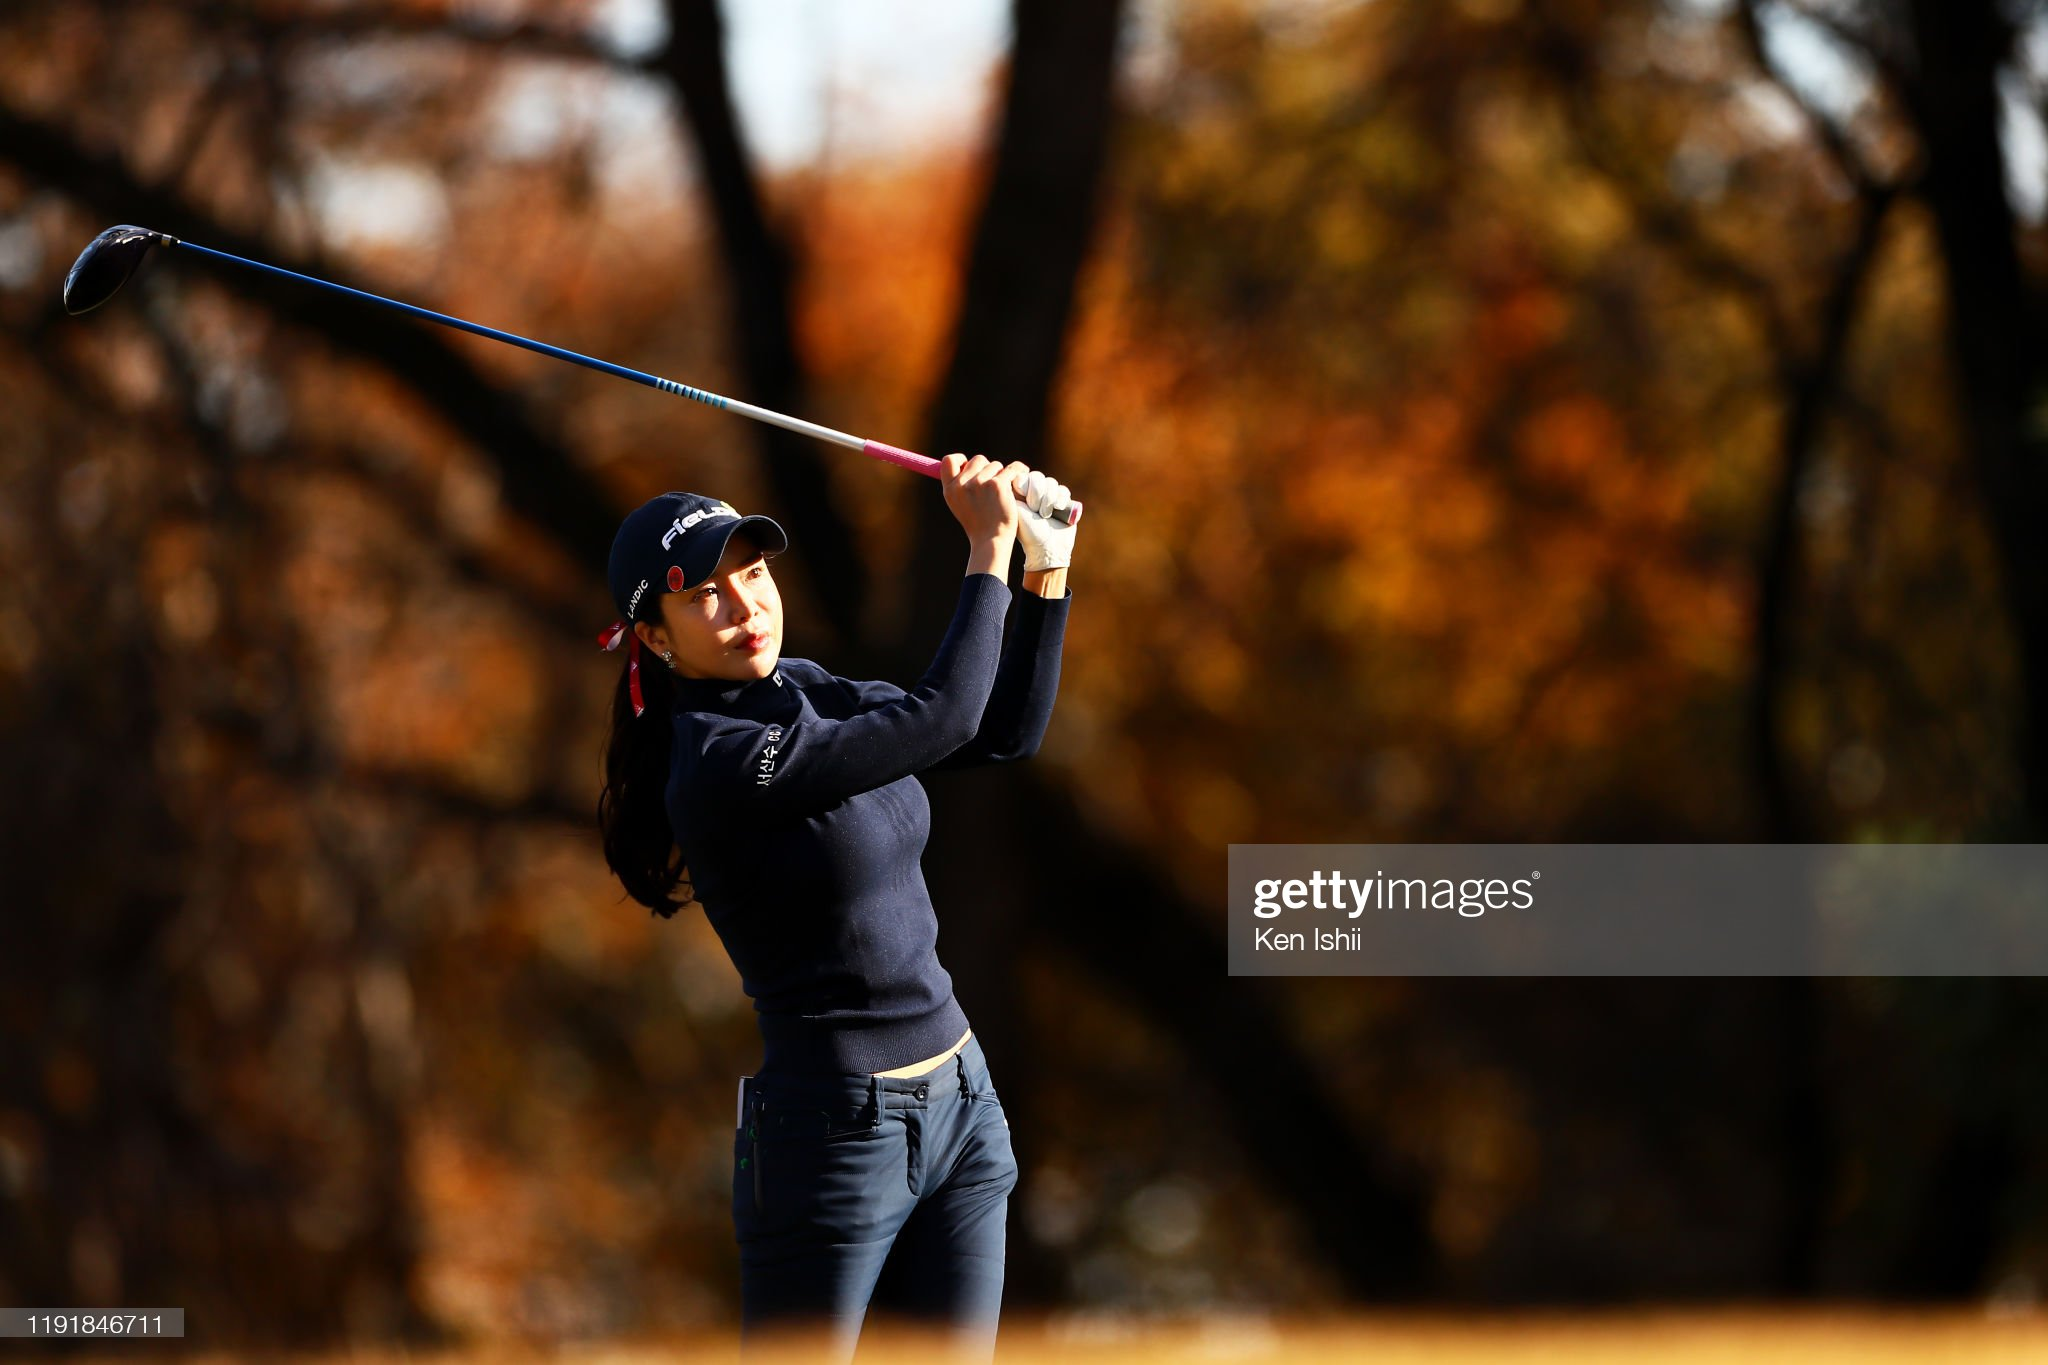 https://media.gettyimages.com/photos/shinae-ahn-of-south-korea-hits-a-tee-shot-on-the-16th-hole-during-the-picture-id1191846711?s=2048x2048